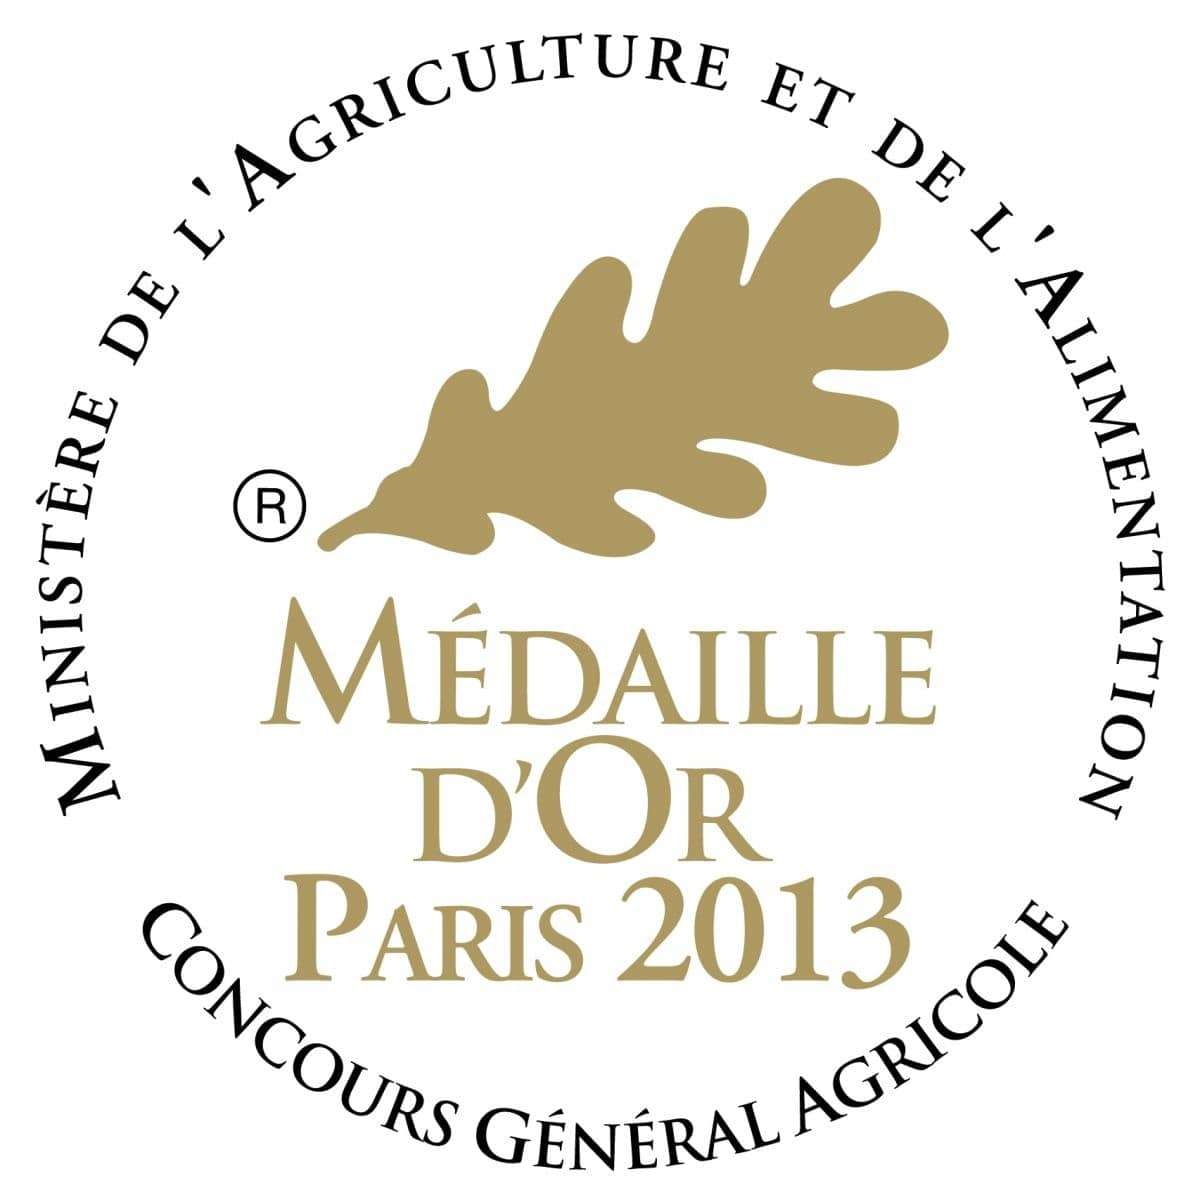 Medaille d'or paris AIX